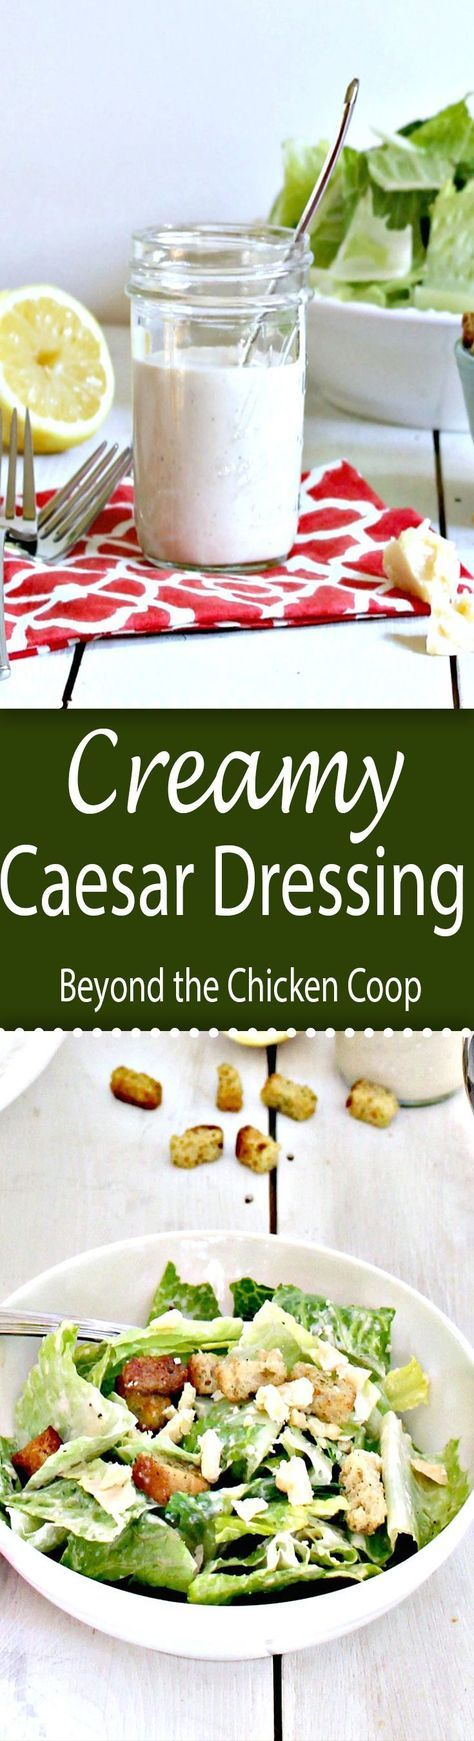 Creamy Caesar Salad dressing. Perfect to make ahead of time and add to your salad when you are ready.